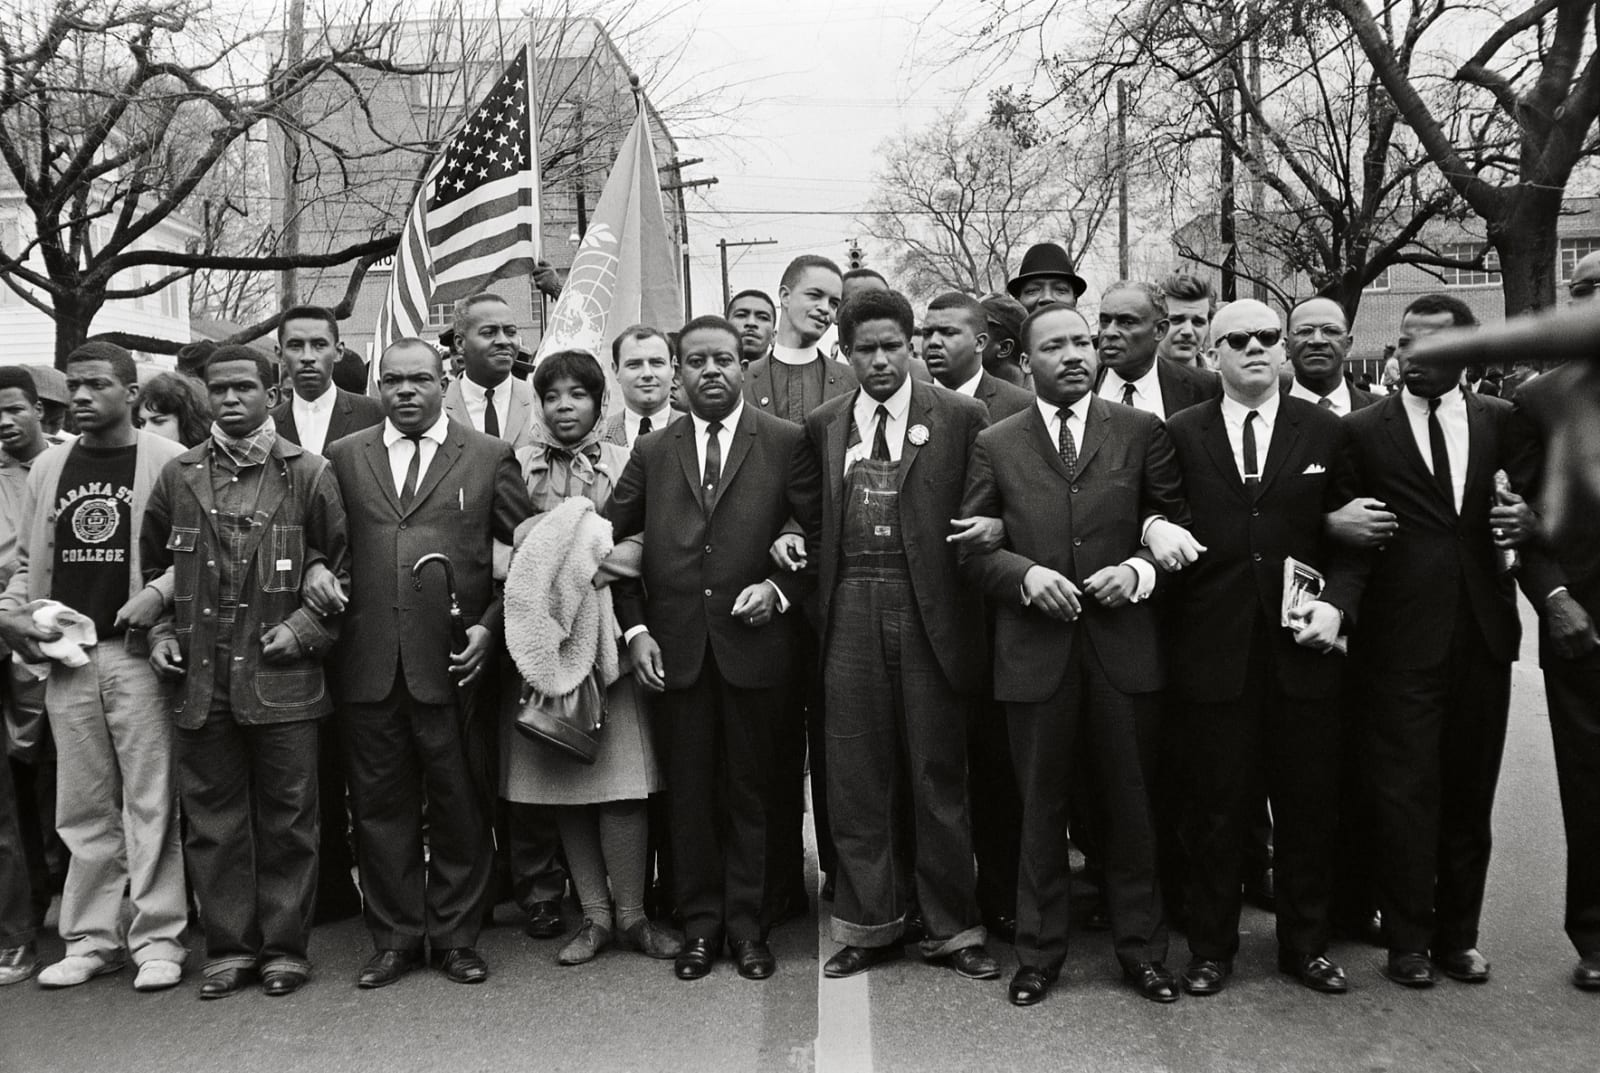 Steve Schapiro Martin Luther King Jr. and Group Enter Montgomery, Black Suits, 1965